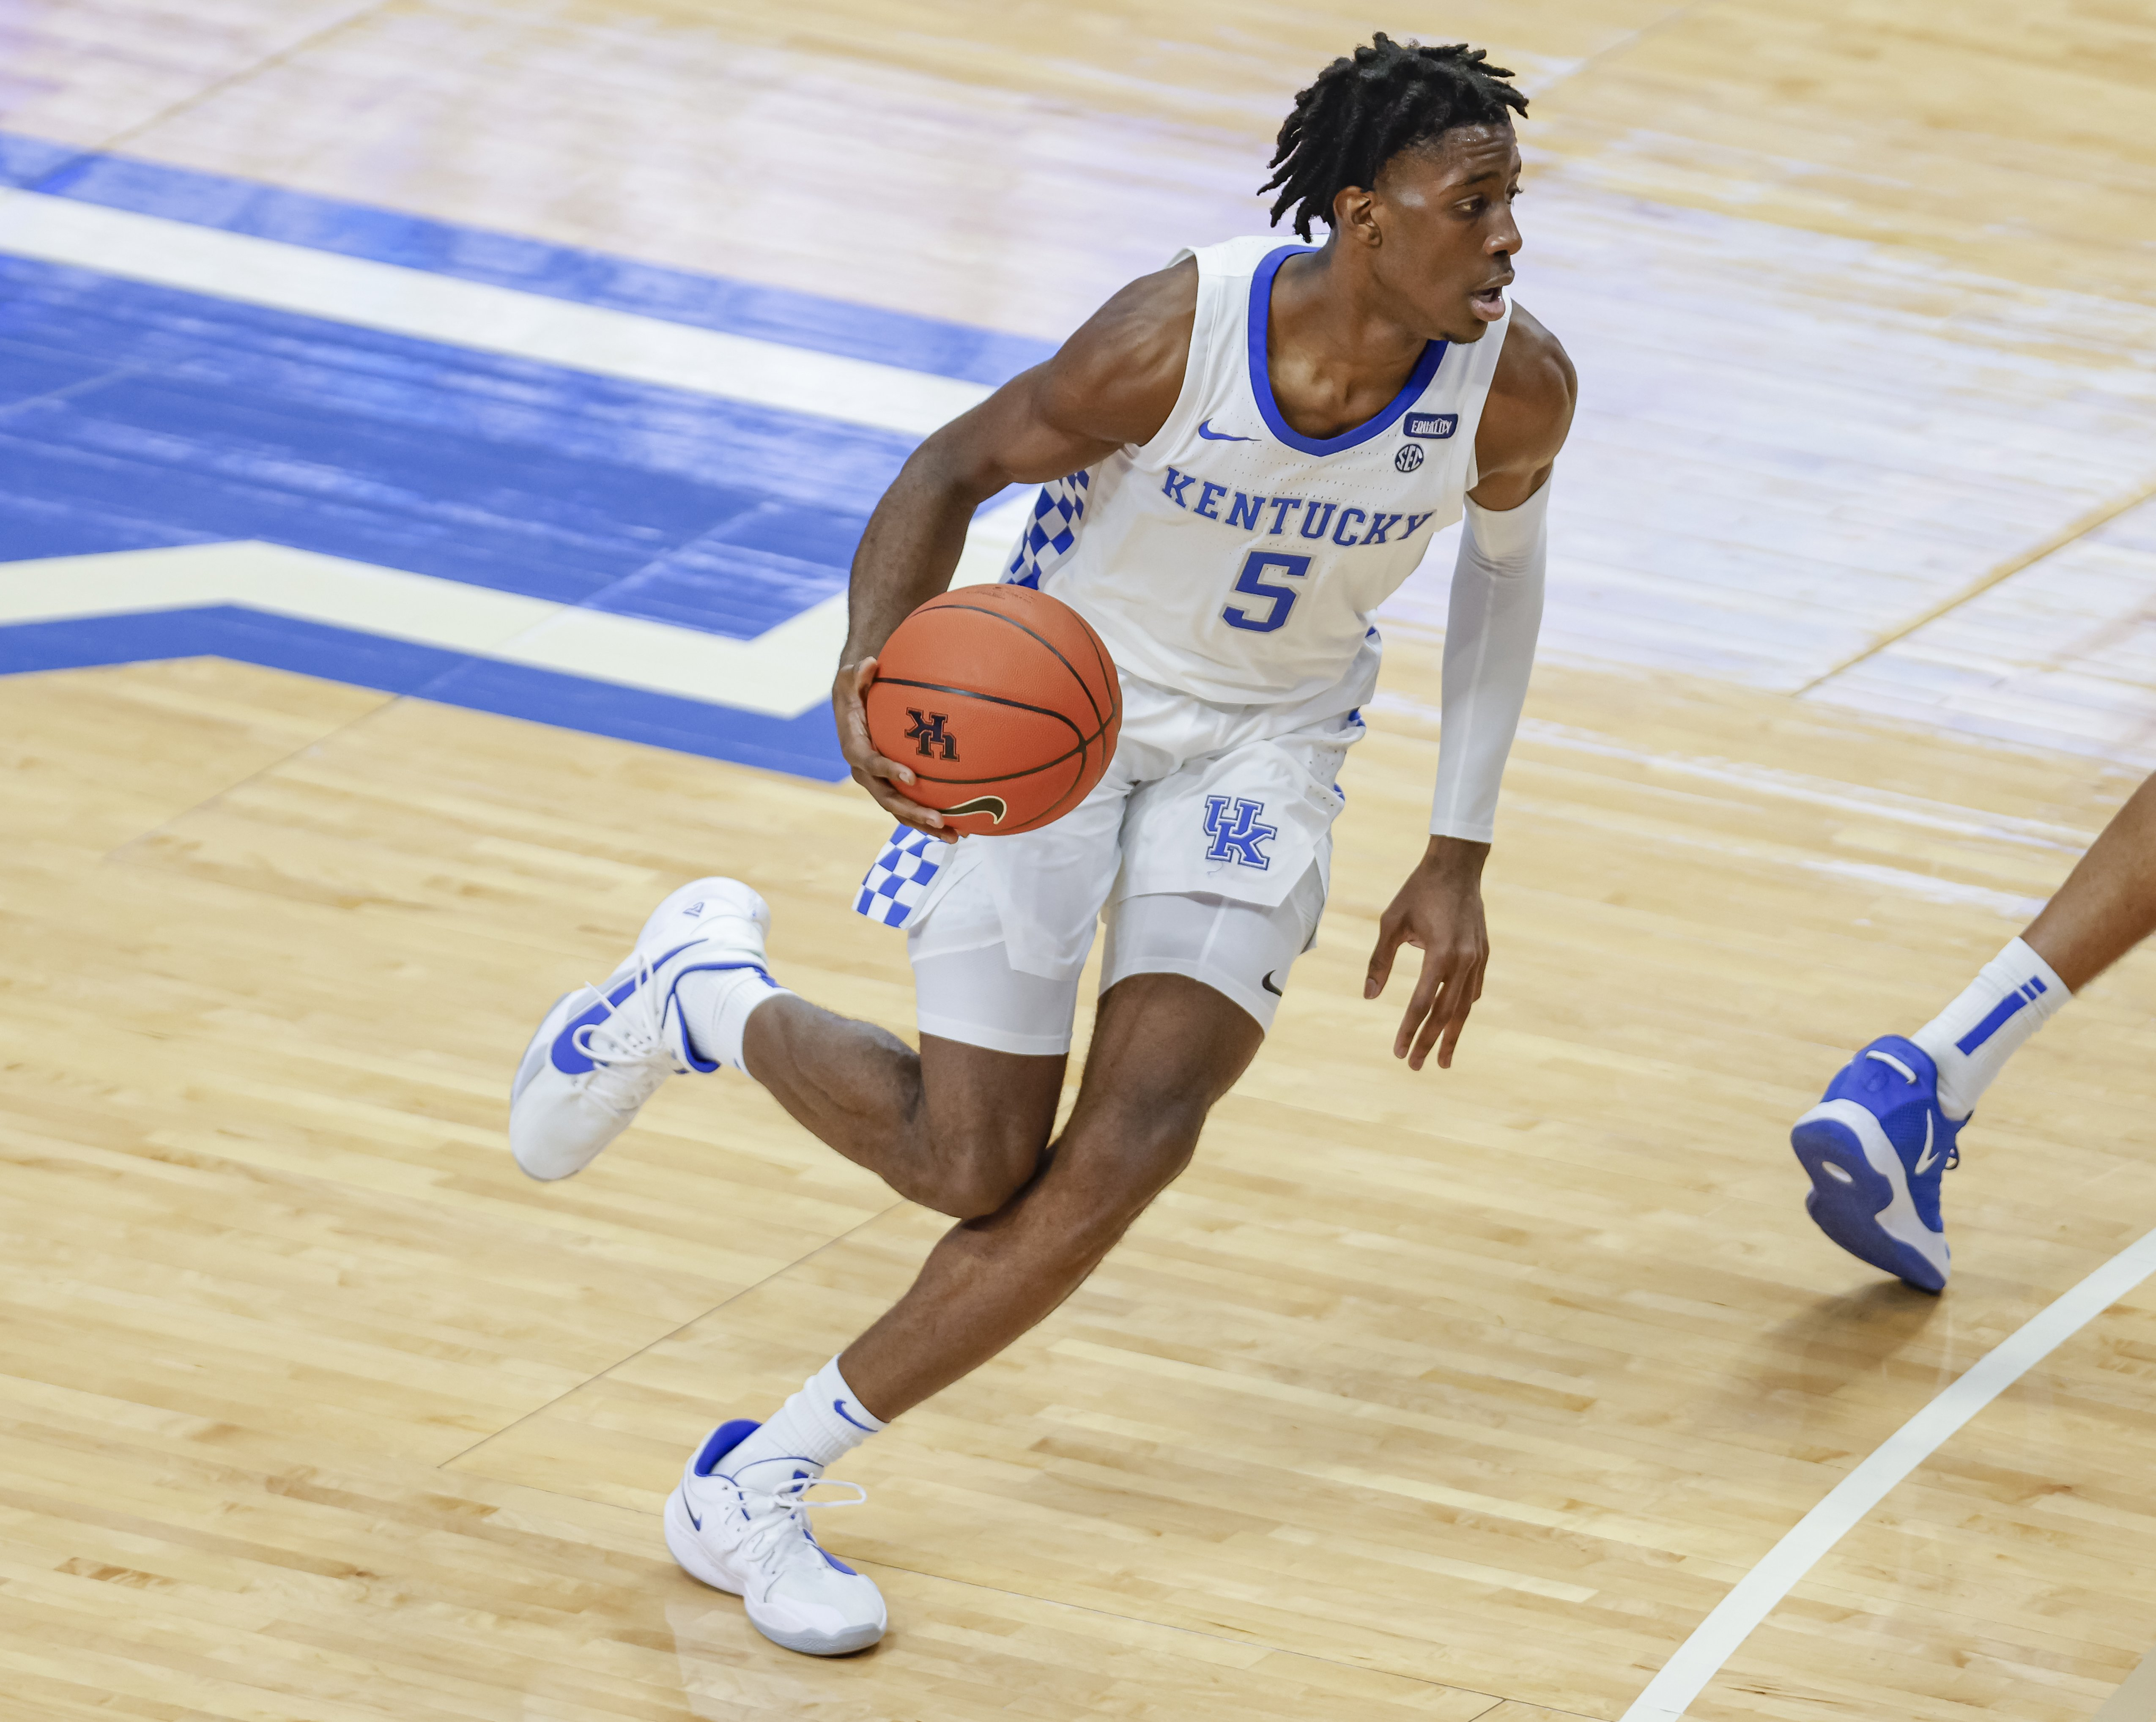 Terrence Clarke #5 of the Kentucky Wildcats plays on the court on December 12, 2020 in Lexington, Kentucky | Photo: Getty Images